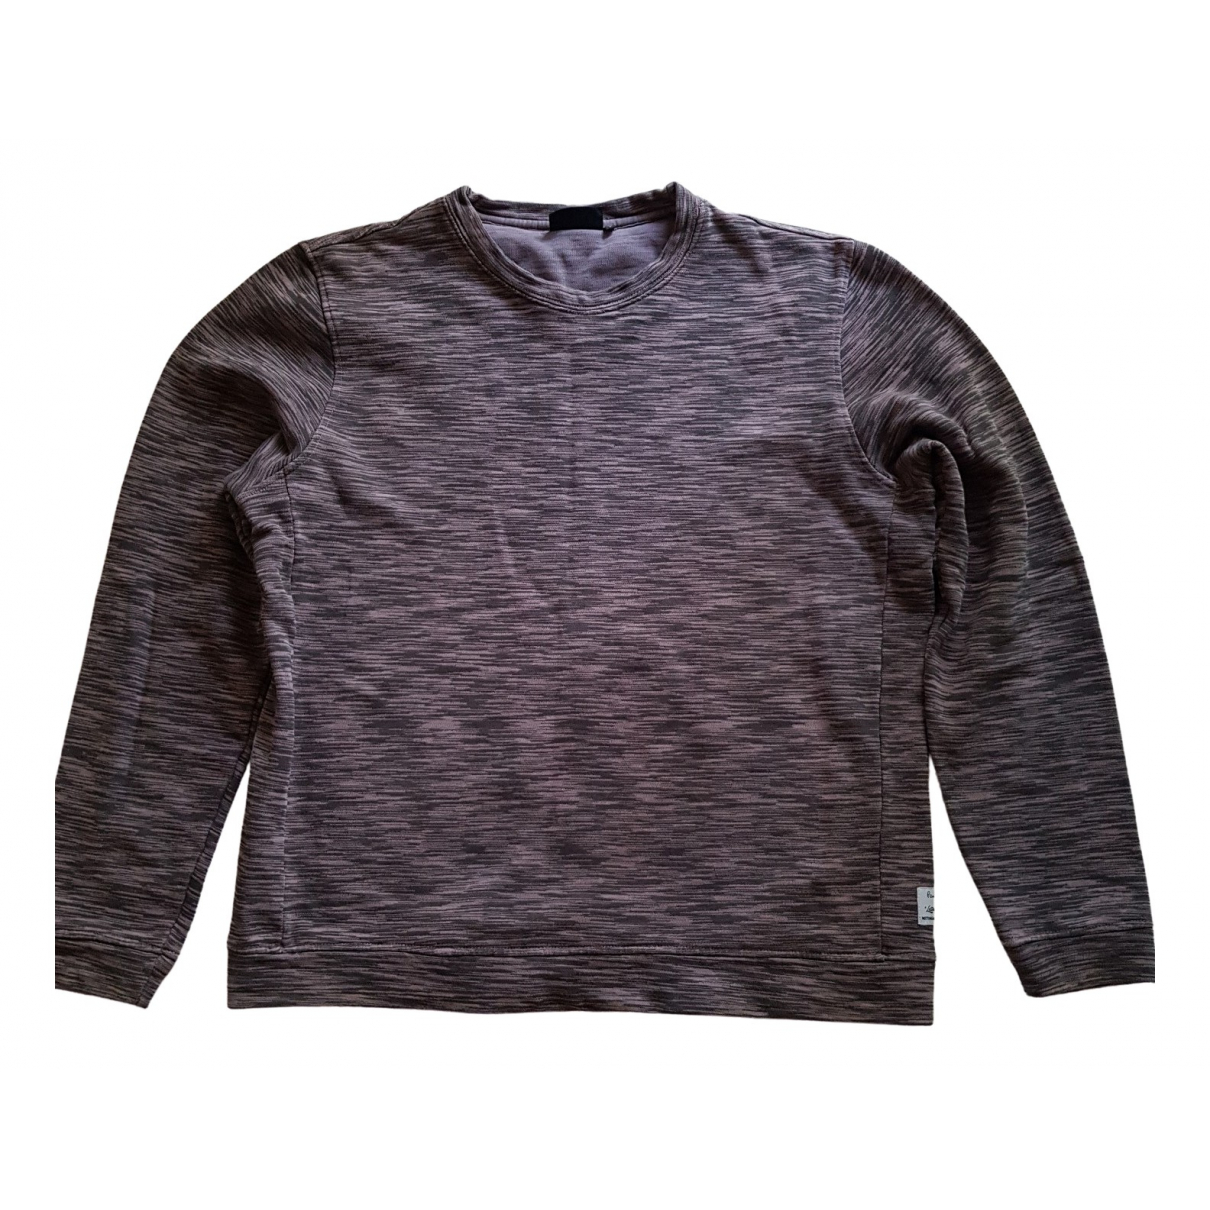 Paul Smith \N Pullover.Westen.Sweatshirts  in  Bunt Baumwolle